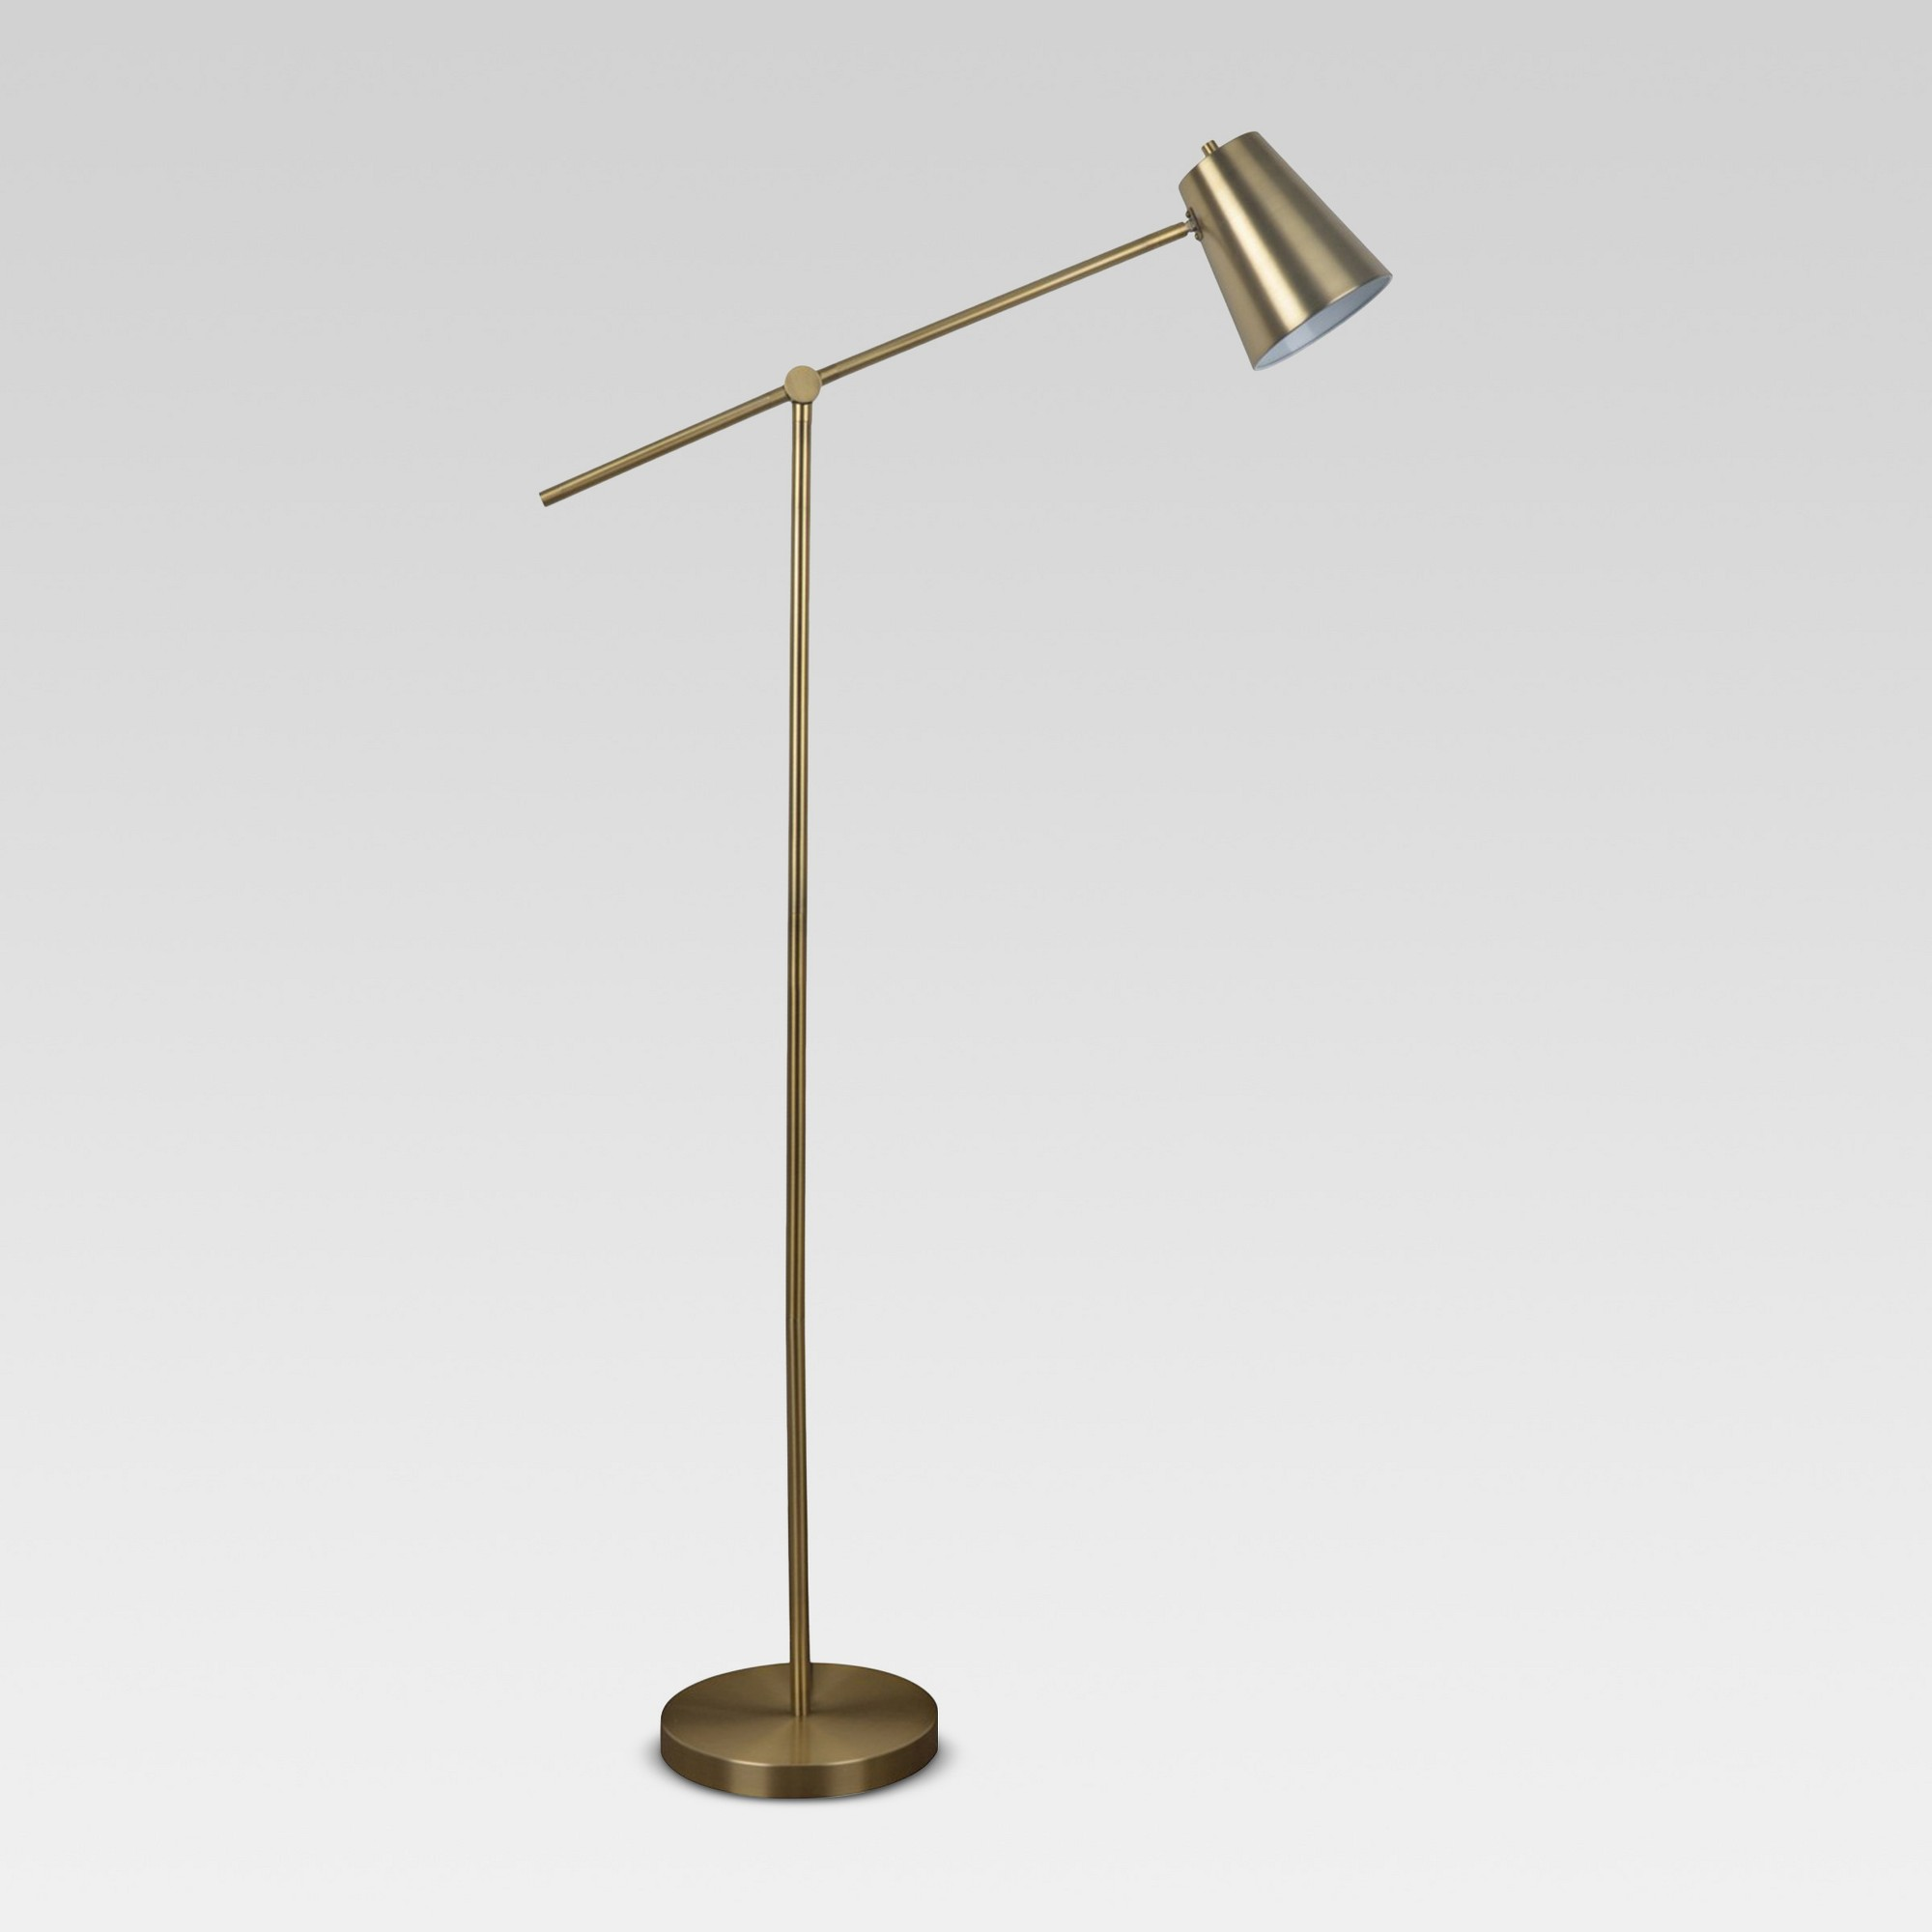 Cantilever Floor Lamp Brass Includes Cfl Light Bulb Project 62 Diy Staircase Diy Staircase Makeover Brass Floor Lamp